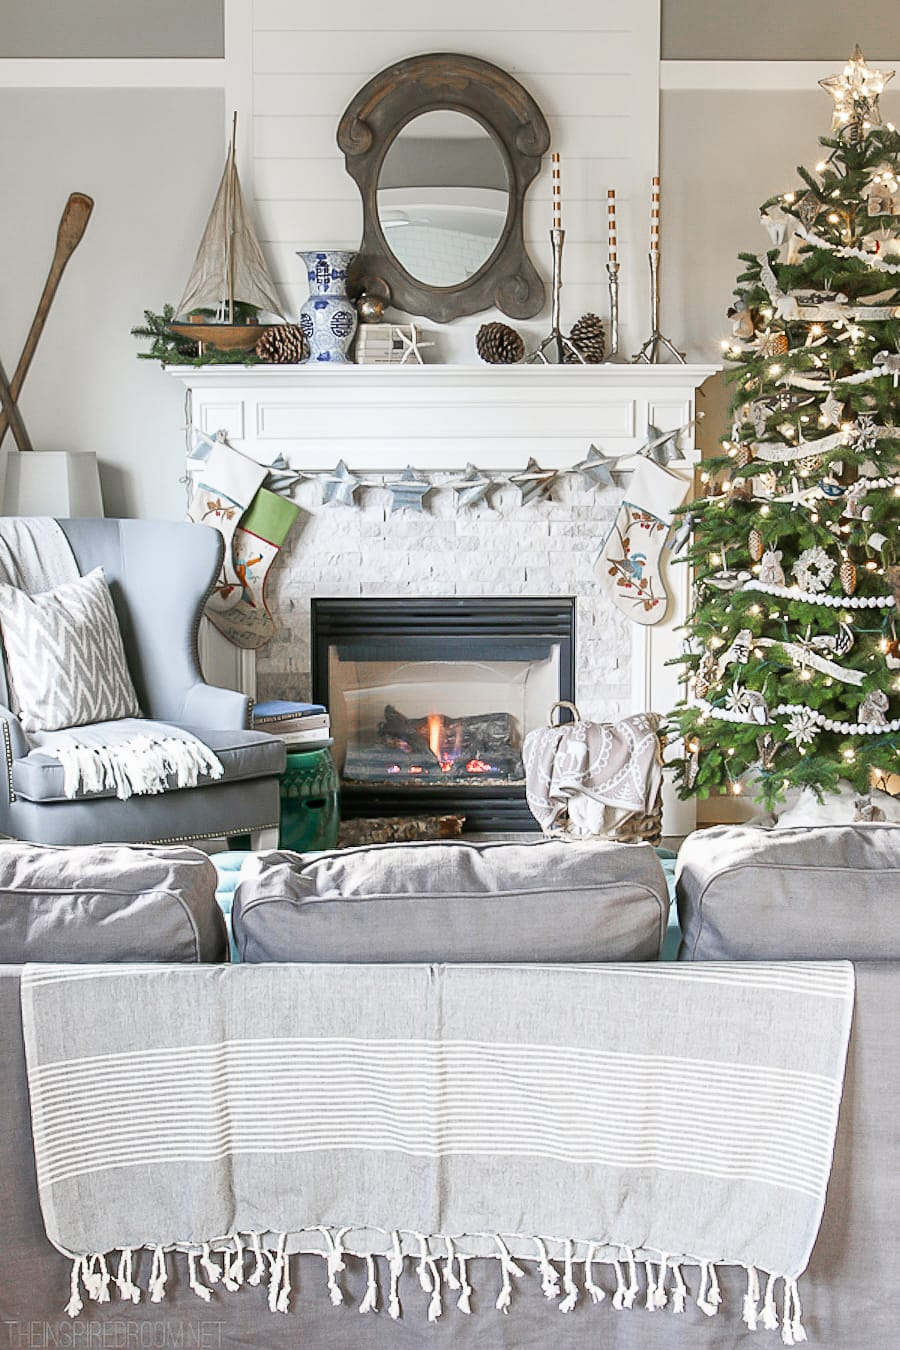 How-to-hang-garland-wreaths-stockings-without-nails-Christmas-House-Tour-The-Inspired-Room-Family-Room-Neutral-Christmas-Decorating